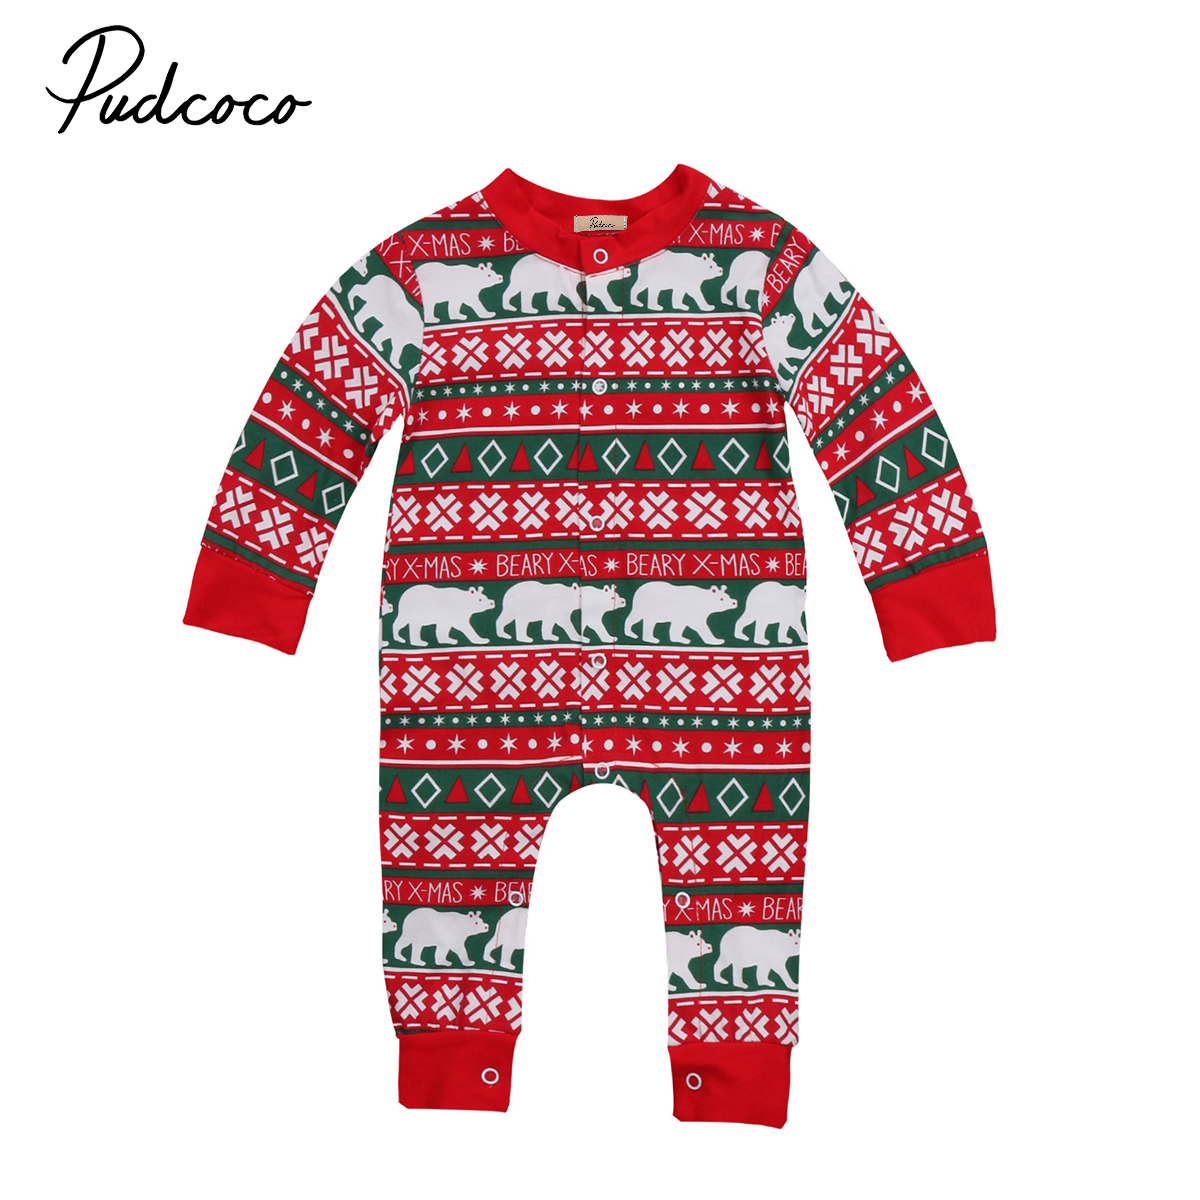 Autumn Winter Warm Newborn Baby Long Sleeve Rompers Christmas Romper Infant Boy Girl Jumpsuit Kids Clothes Outfits Age 0-24M autumn winter baby girl rompers striped cute infant jumpsuit ropa long sleeve thicken cotton girl romper hat toddler clothes